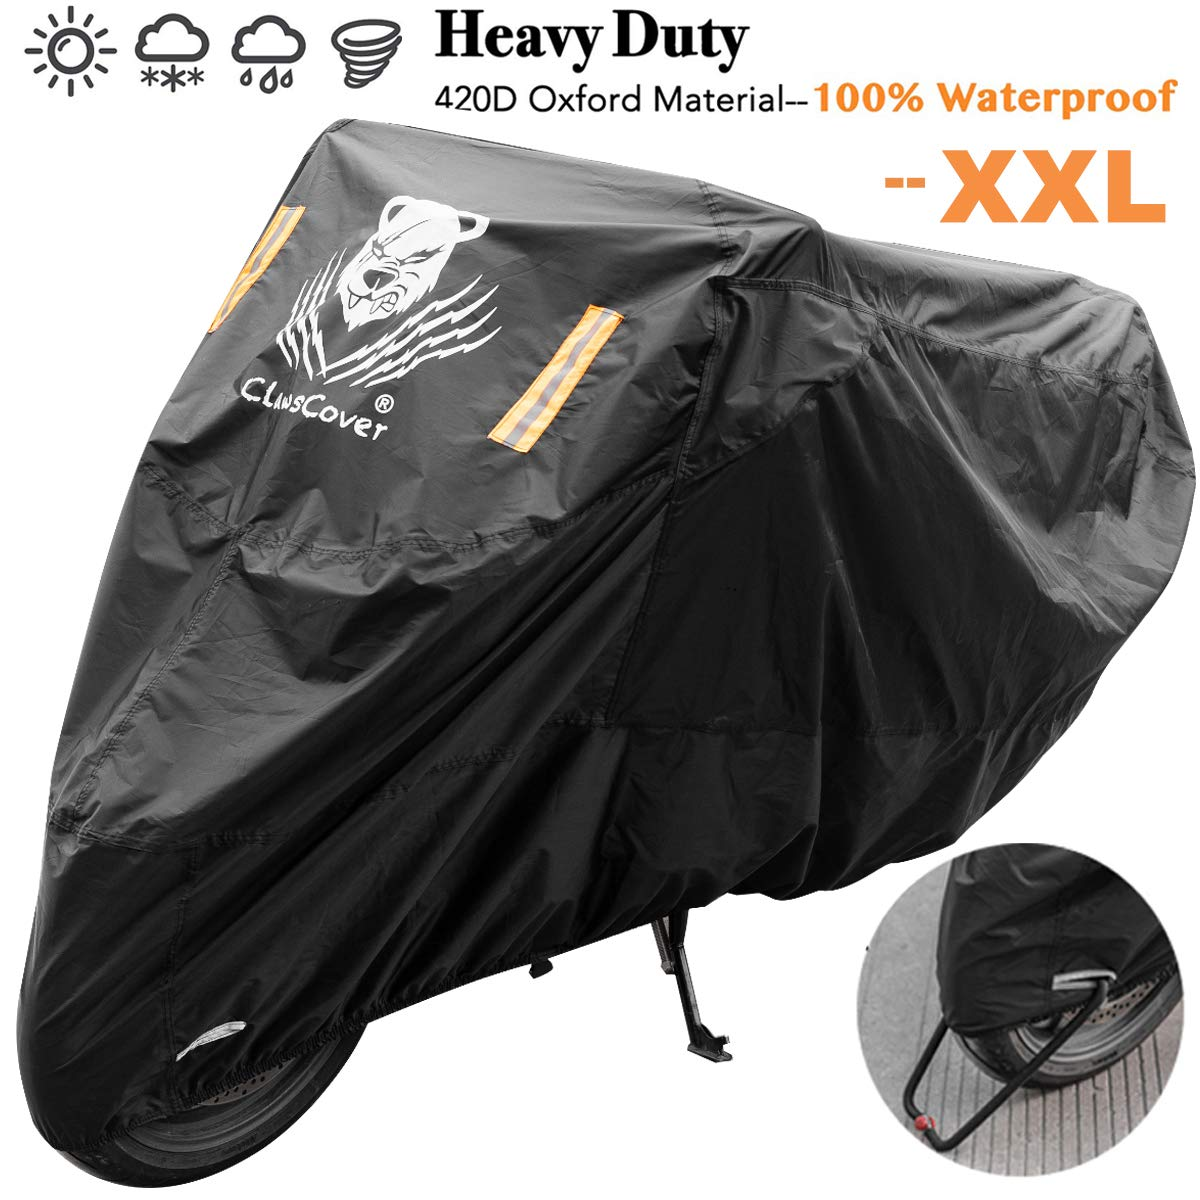 Waterproof Heavy Duty Durable Thick 210D All Season Outdoor Protection for Motorcycle up to 104 Inches Long XYZCTEM Motorbike Cover